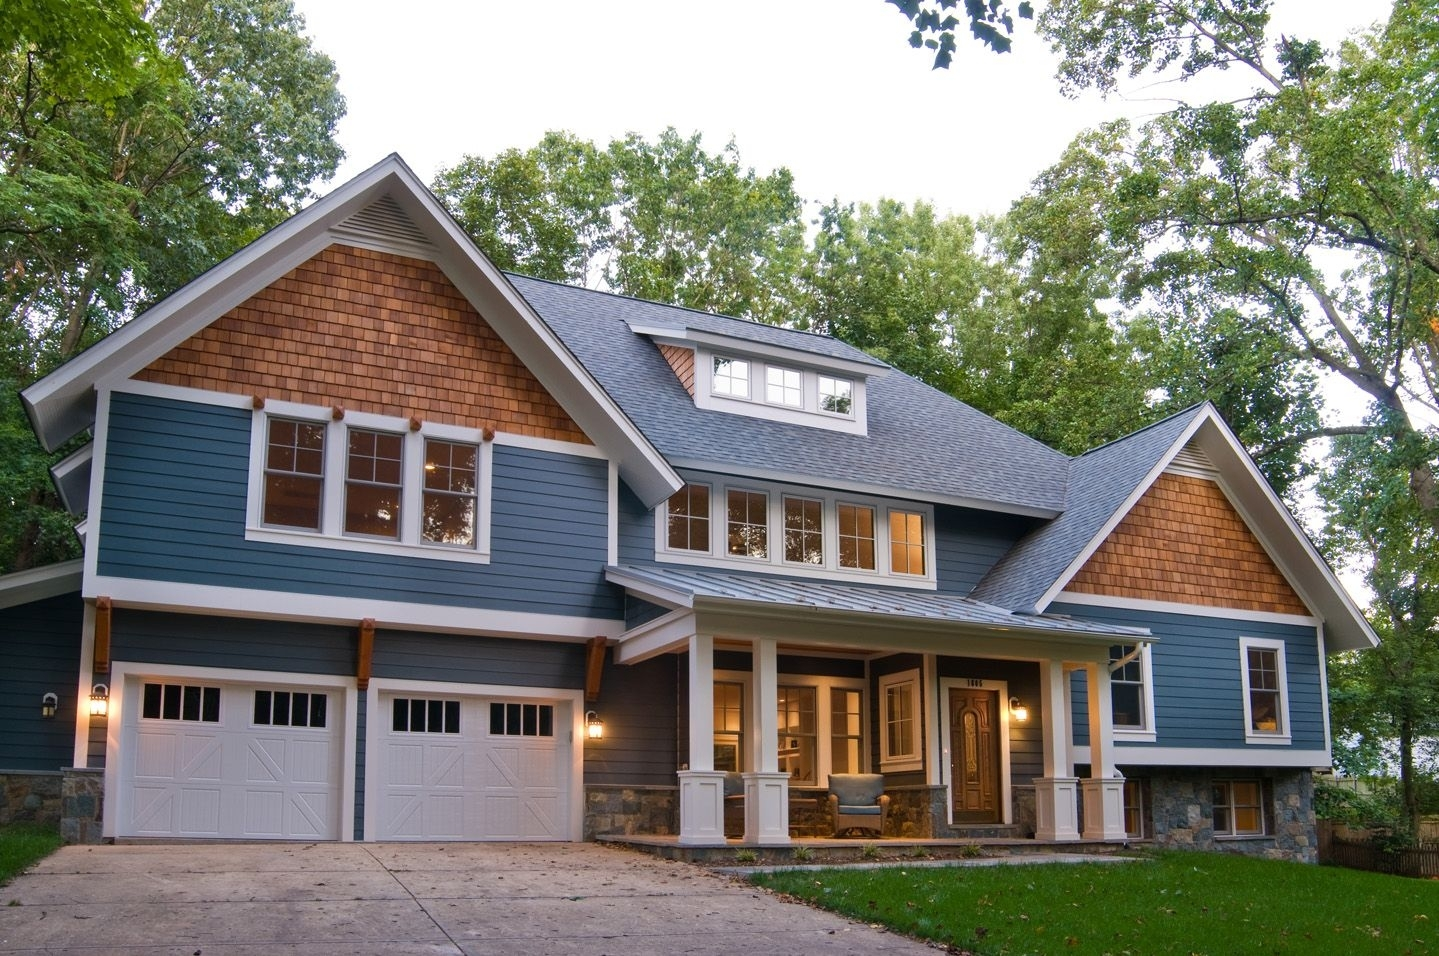 Split Level House Siding Ideas - Madison Art Center Design on House Siding Ideas  id=45257